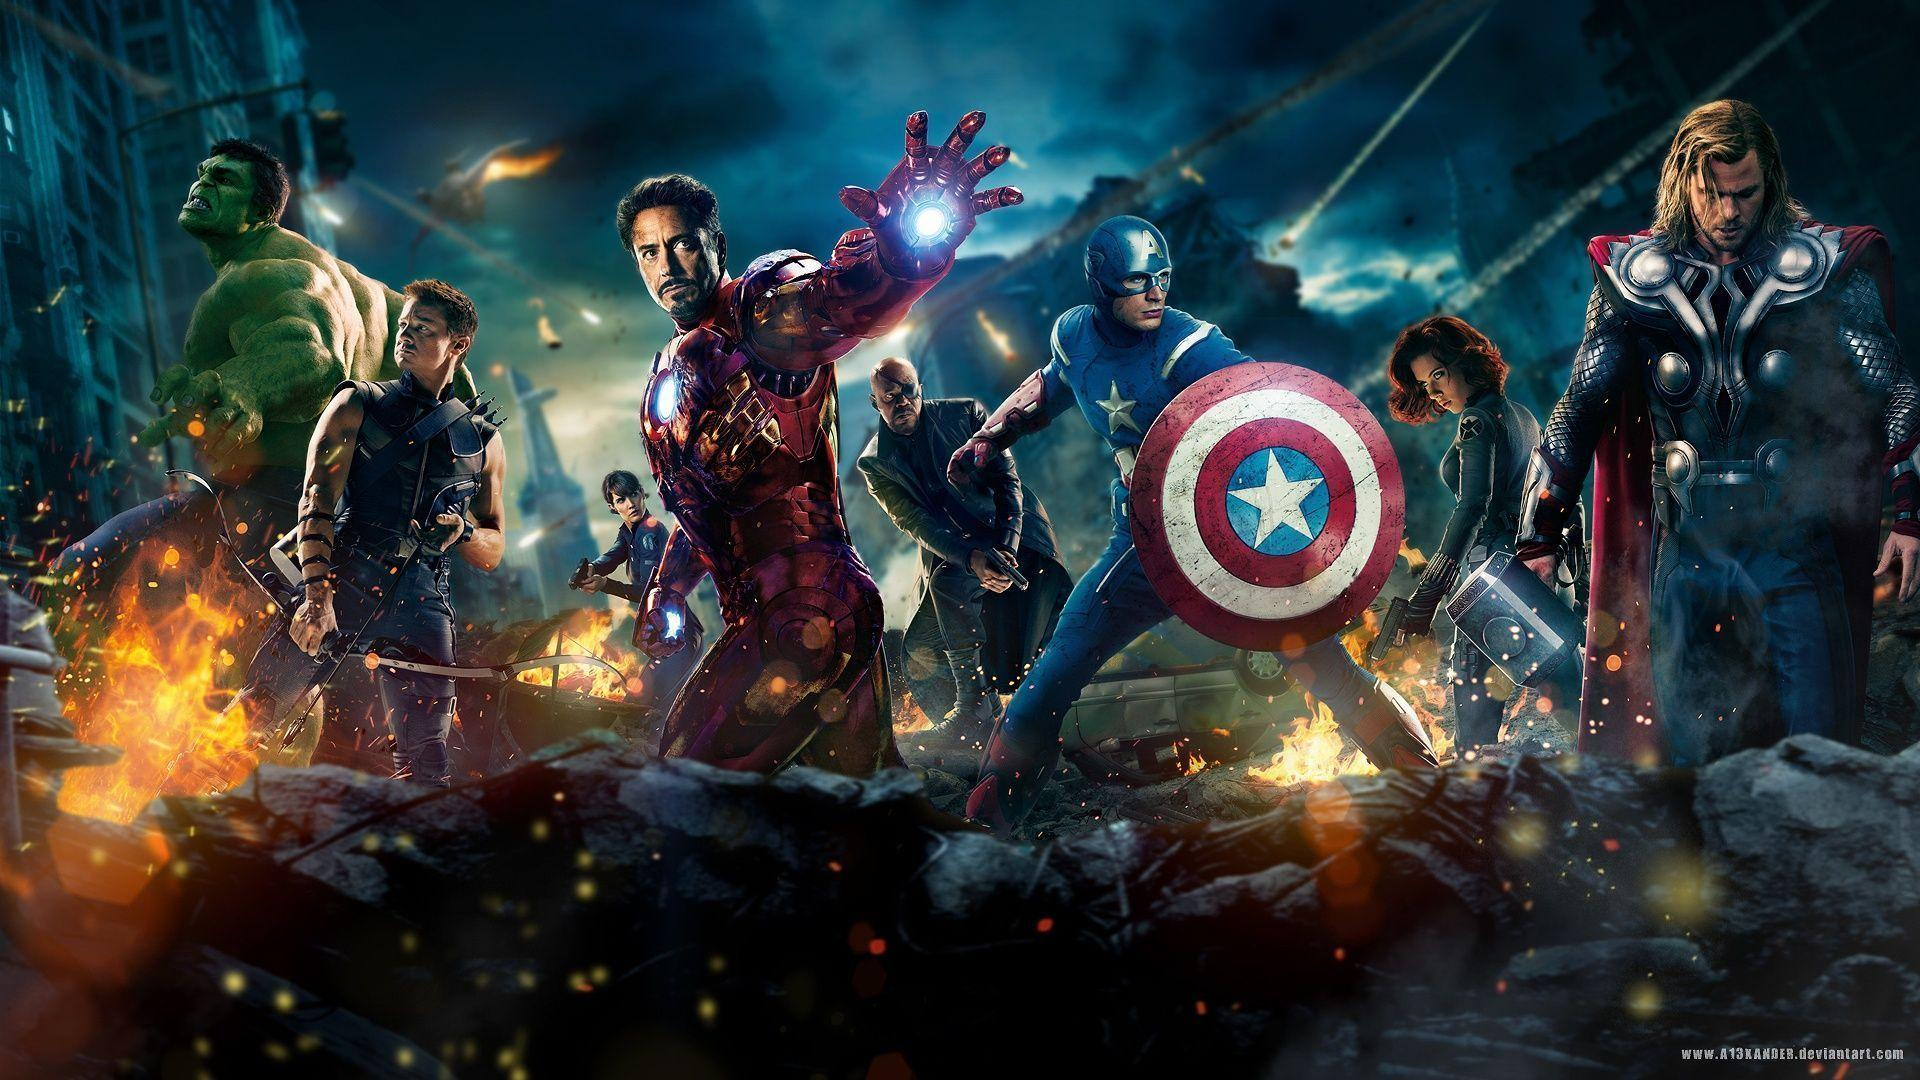 Wallpapers Tagged With AVENGERS | AVENGERS HD Wallpapers | Page 1